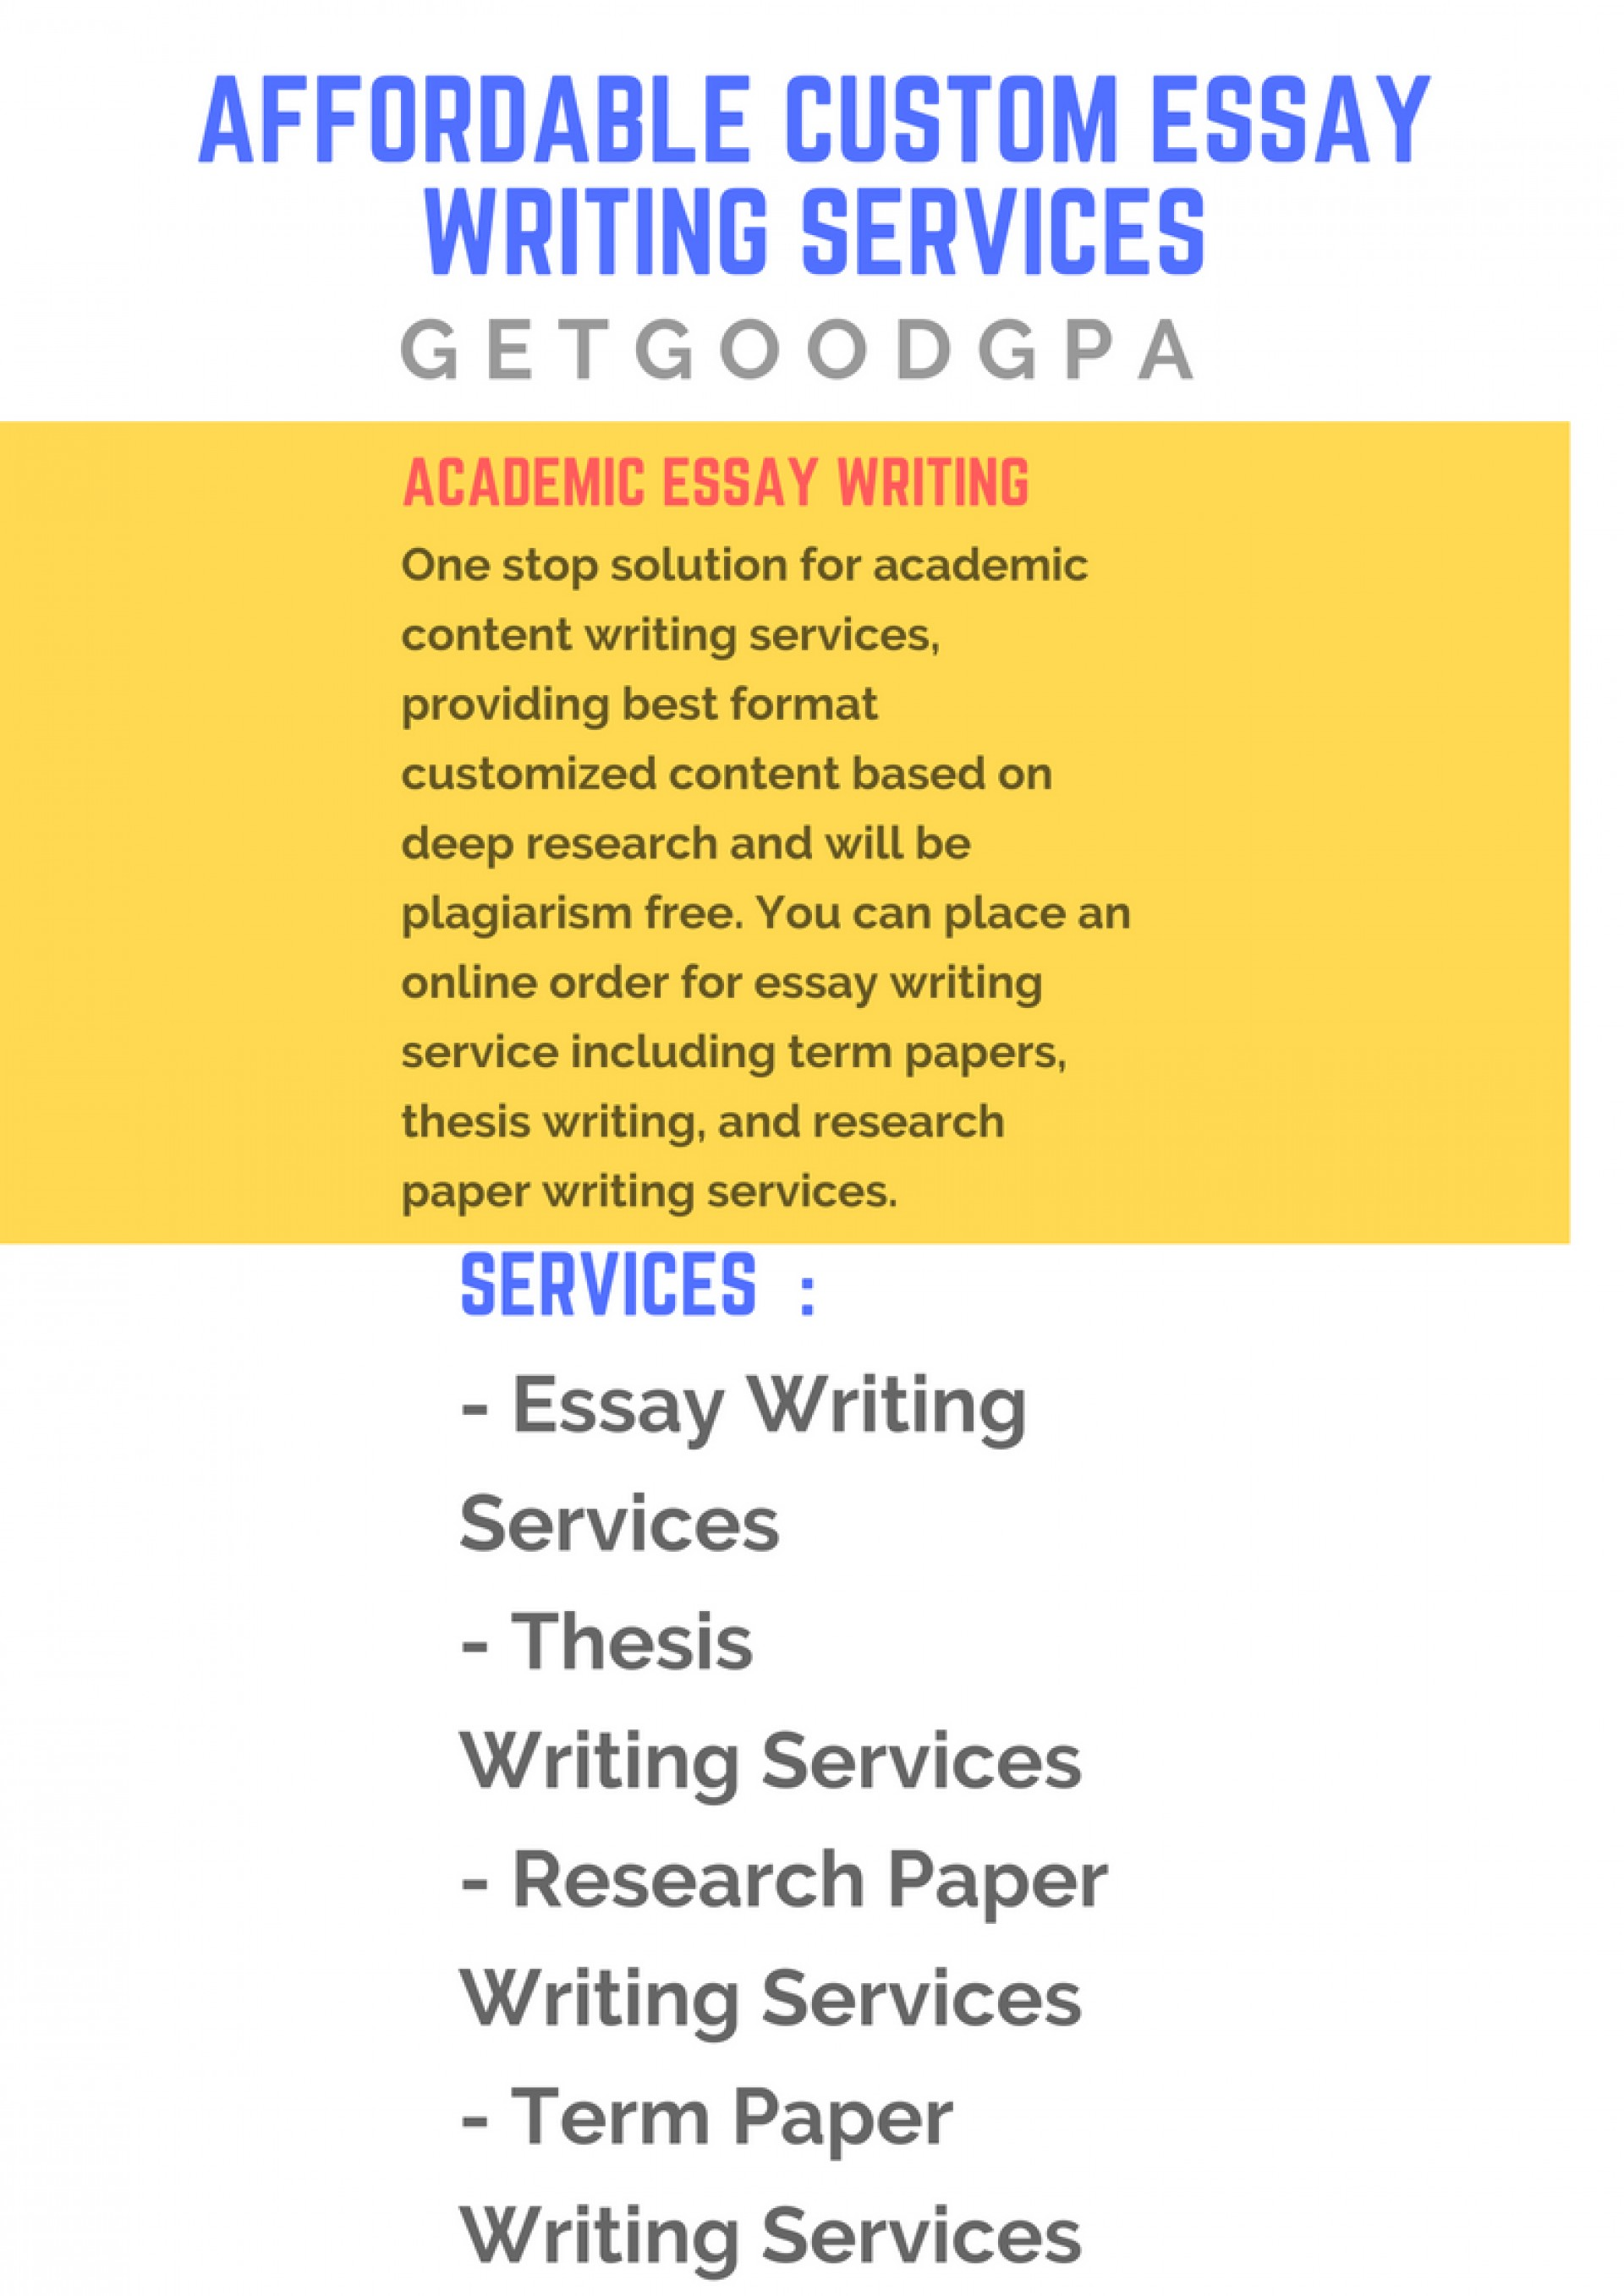 018 Customized Research Paper Affordable Custom Essay Writing Awesome 1920